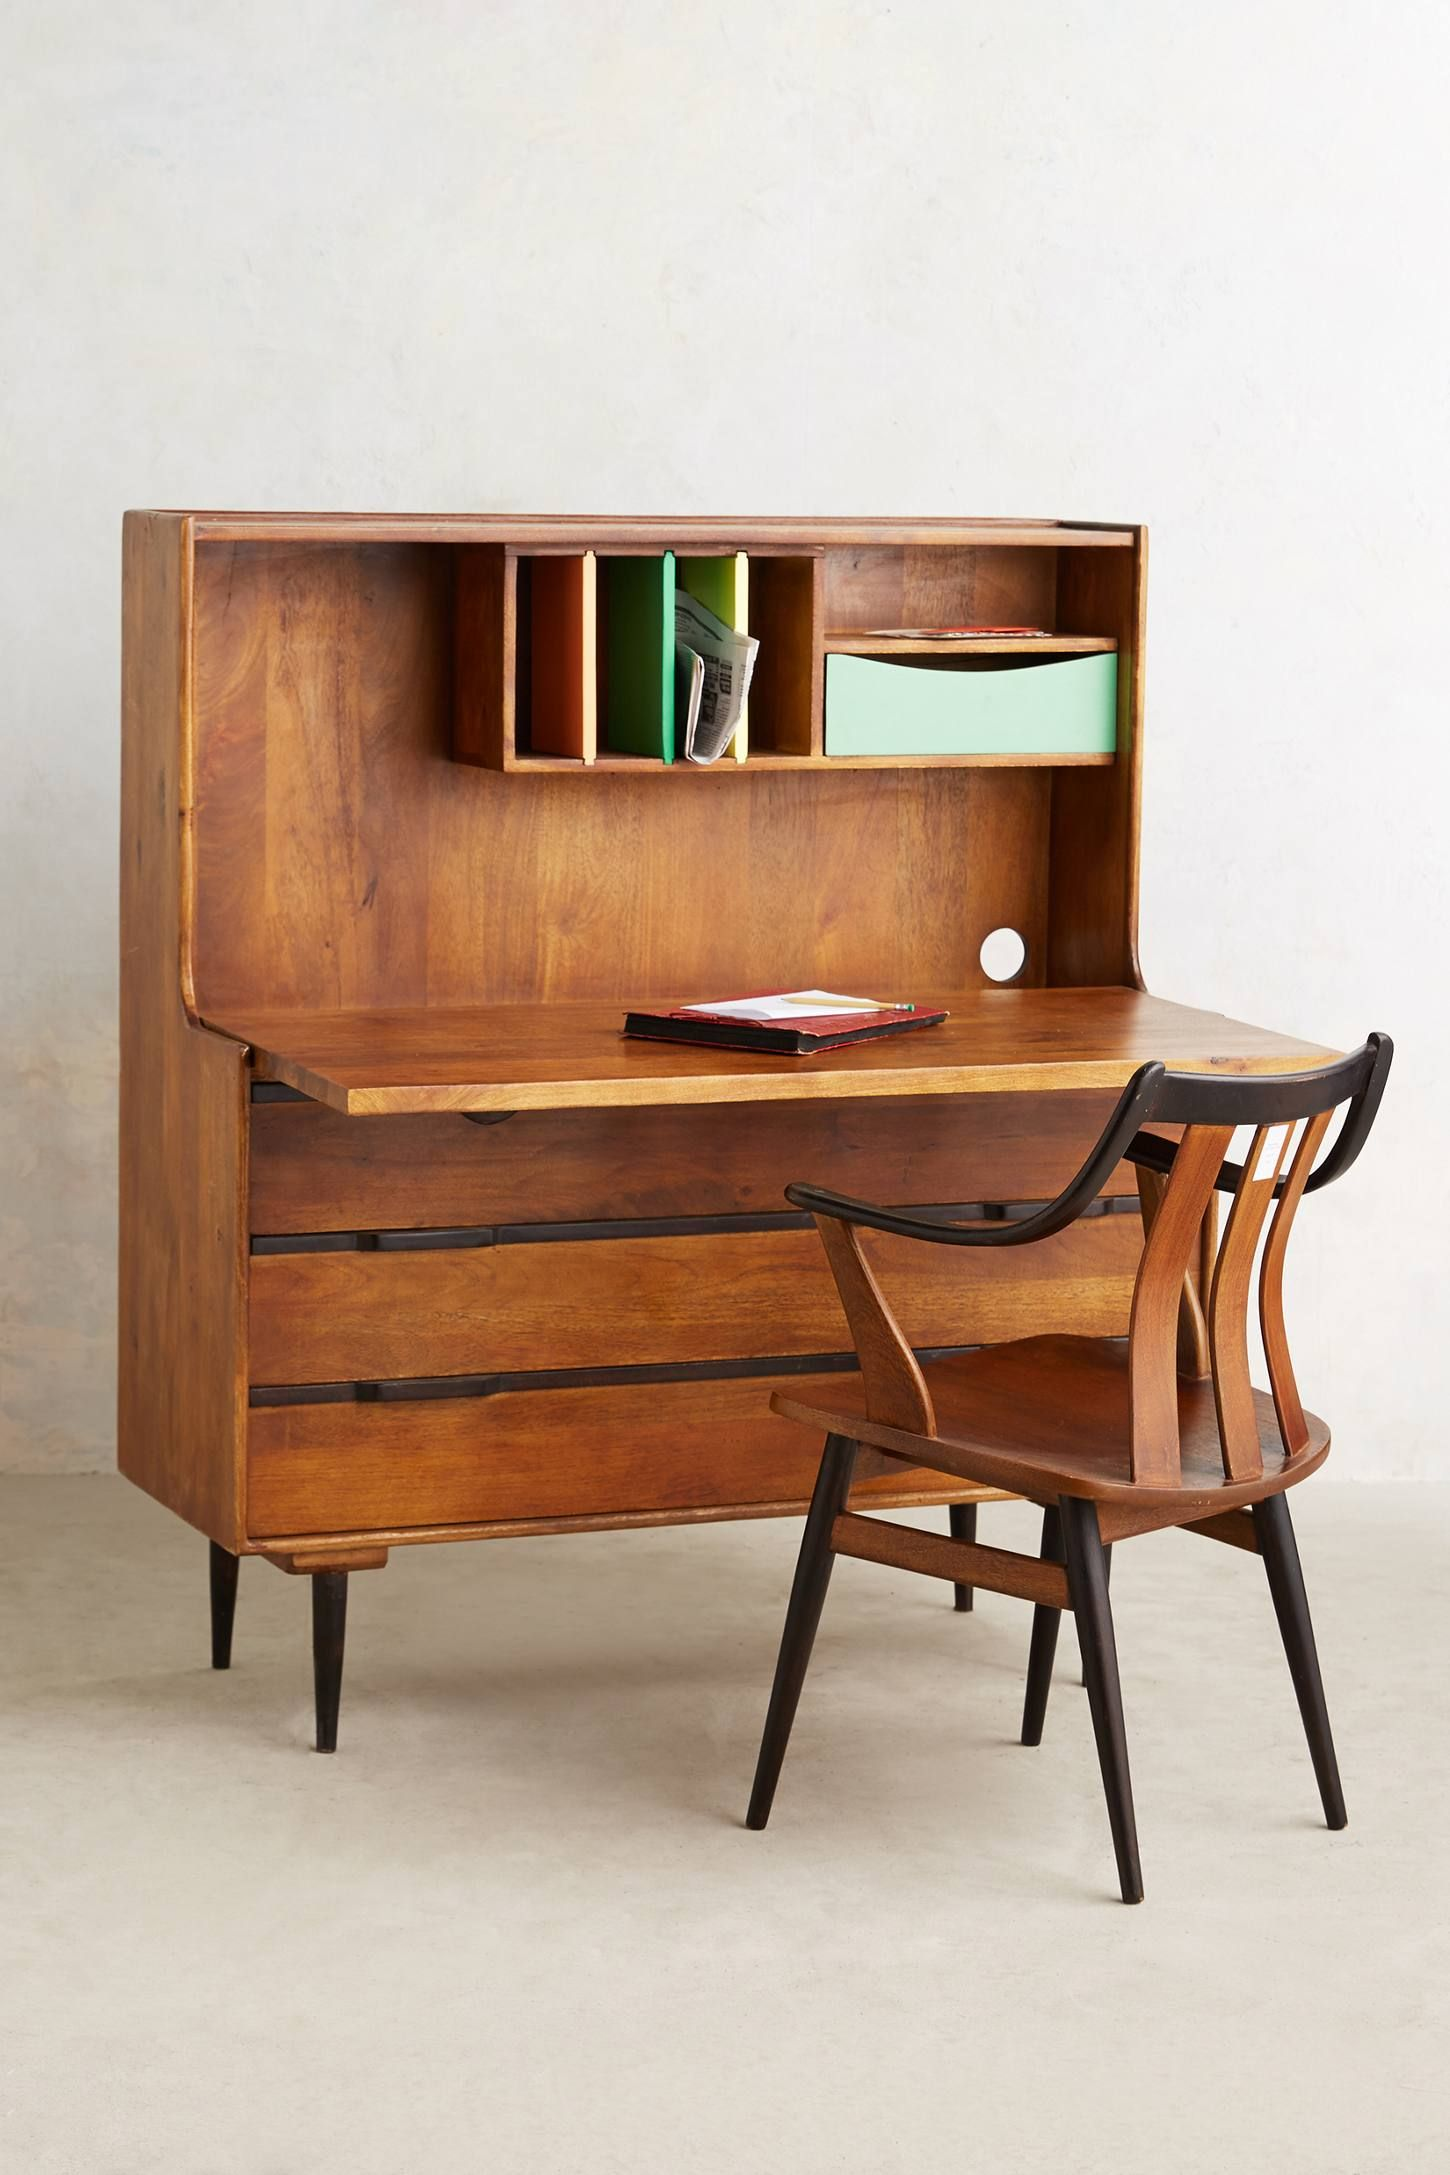 Retro writing desk